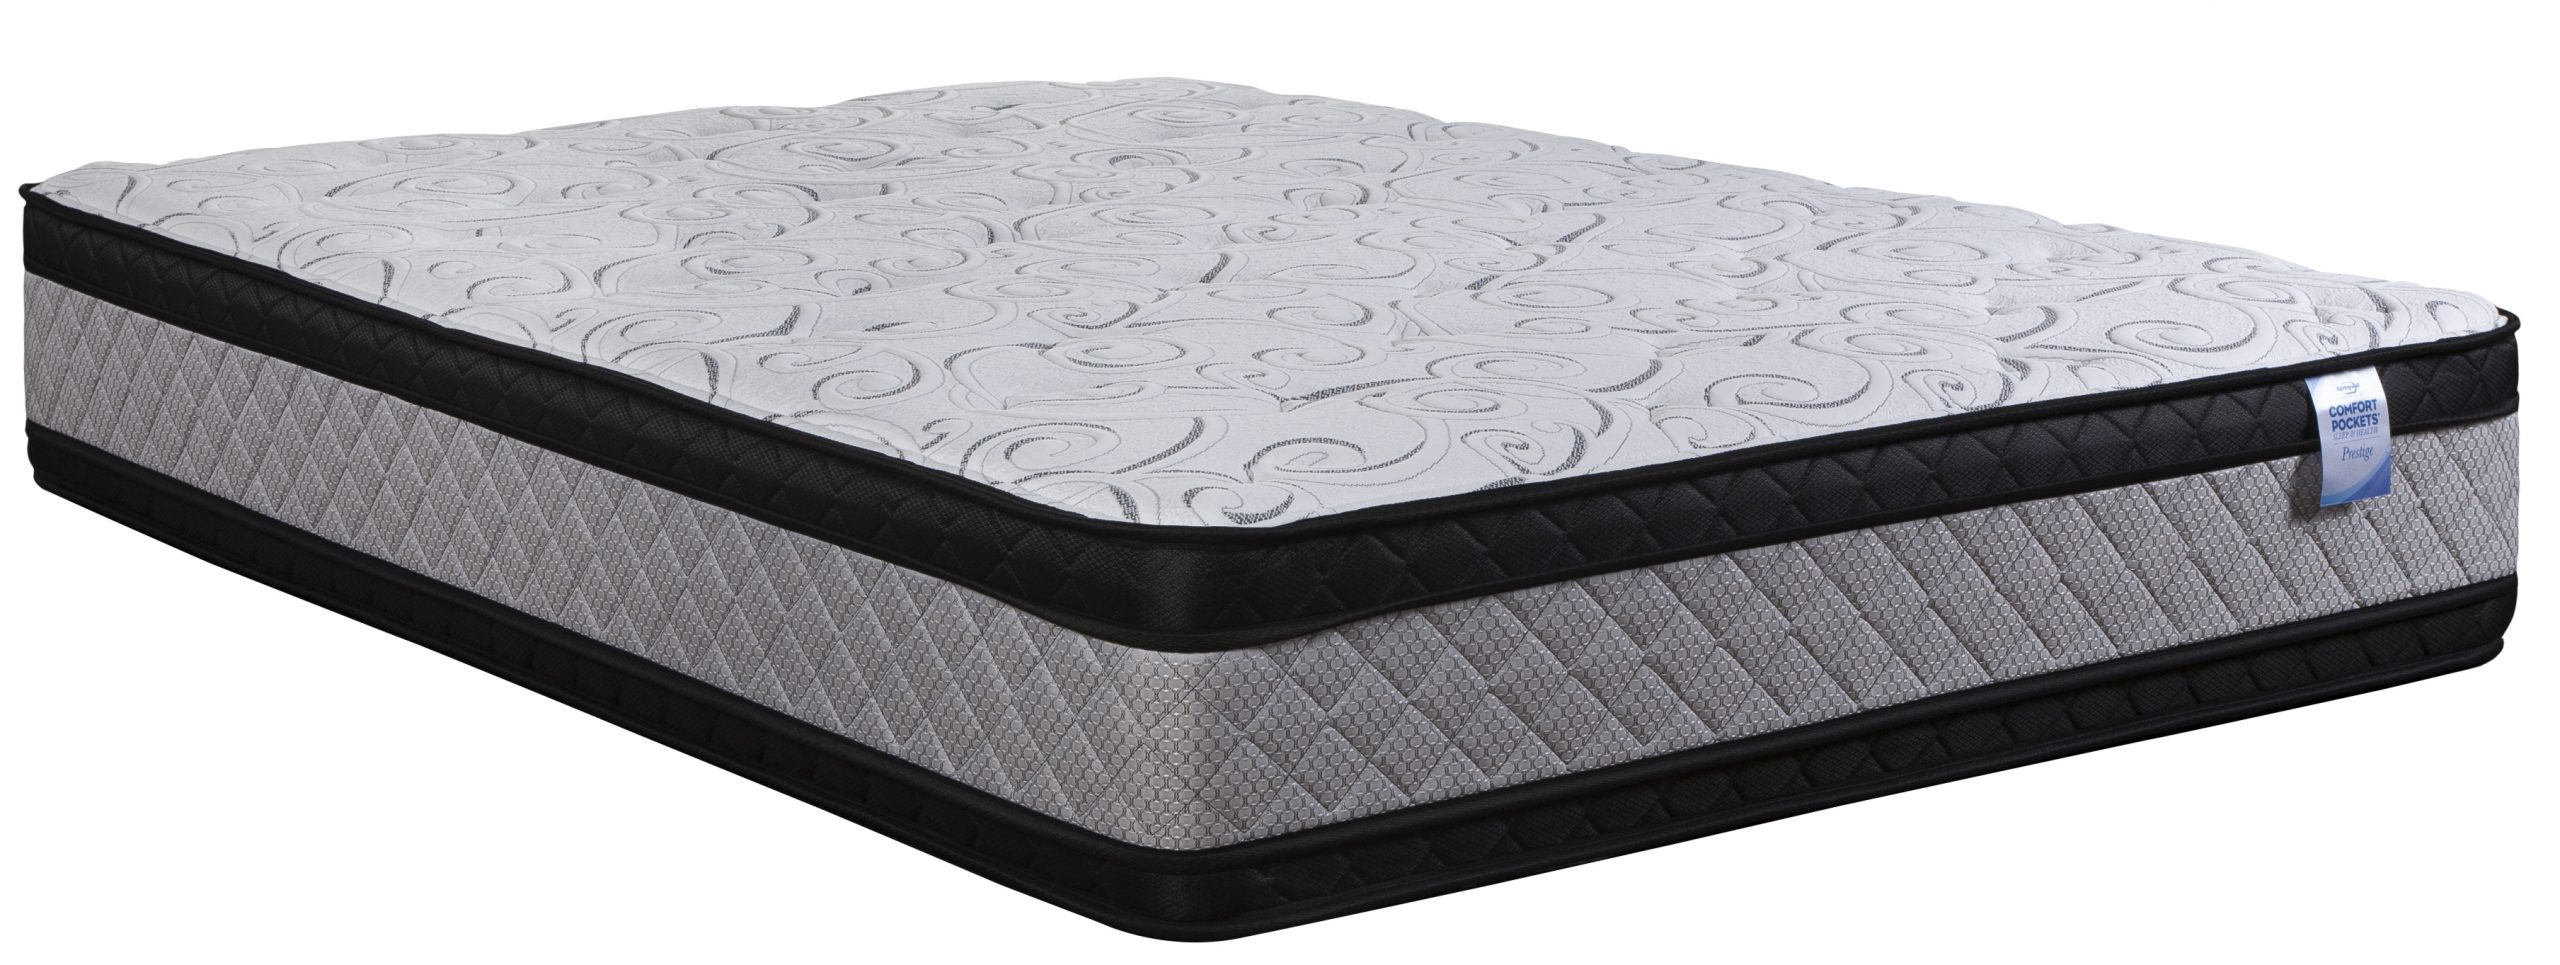 3 Reasons to choose a 2-sided mattress